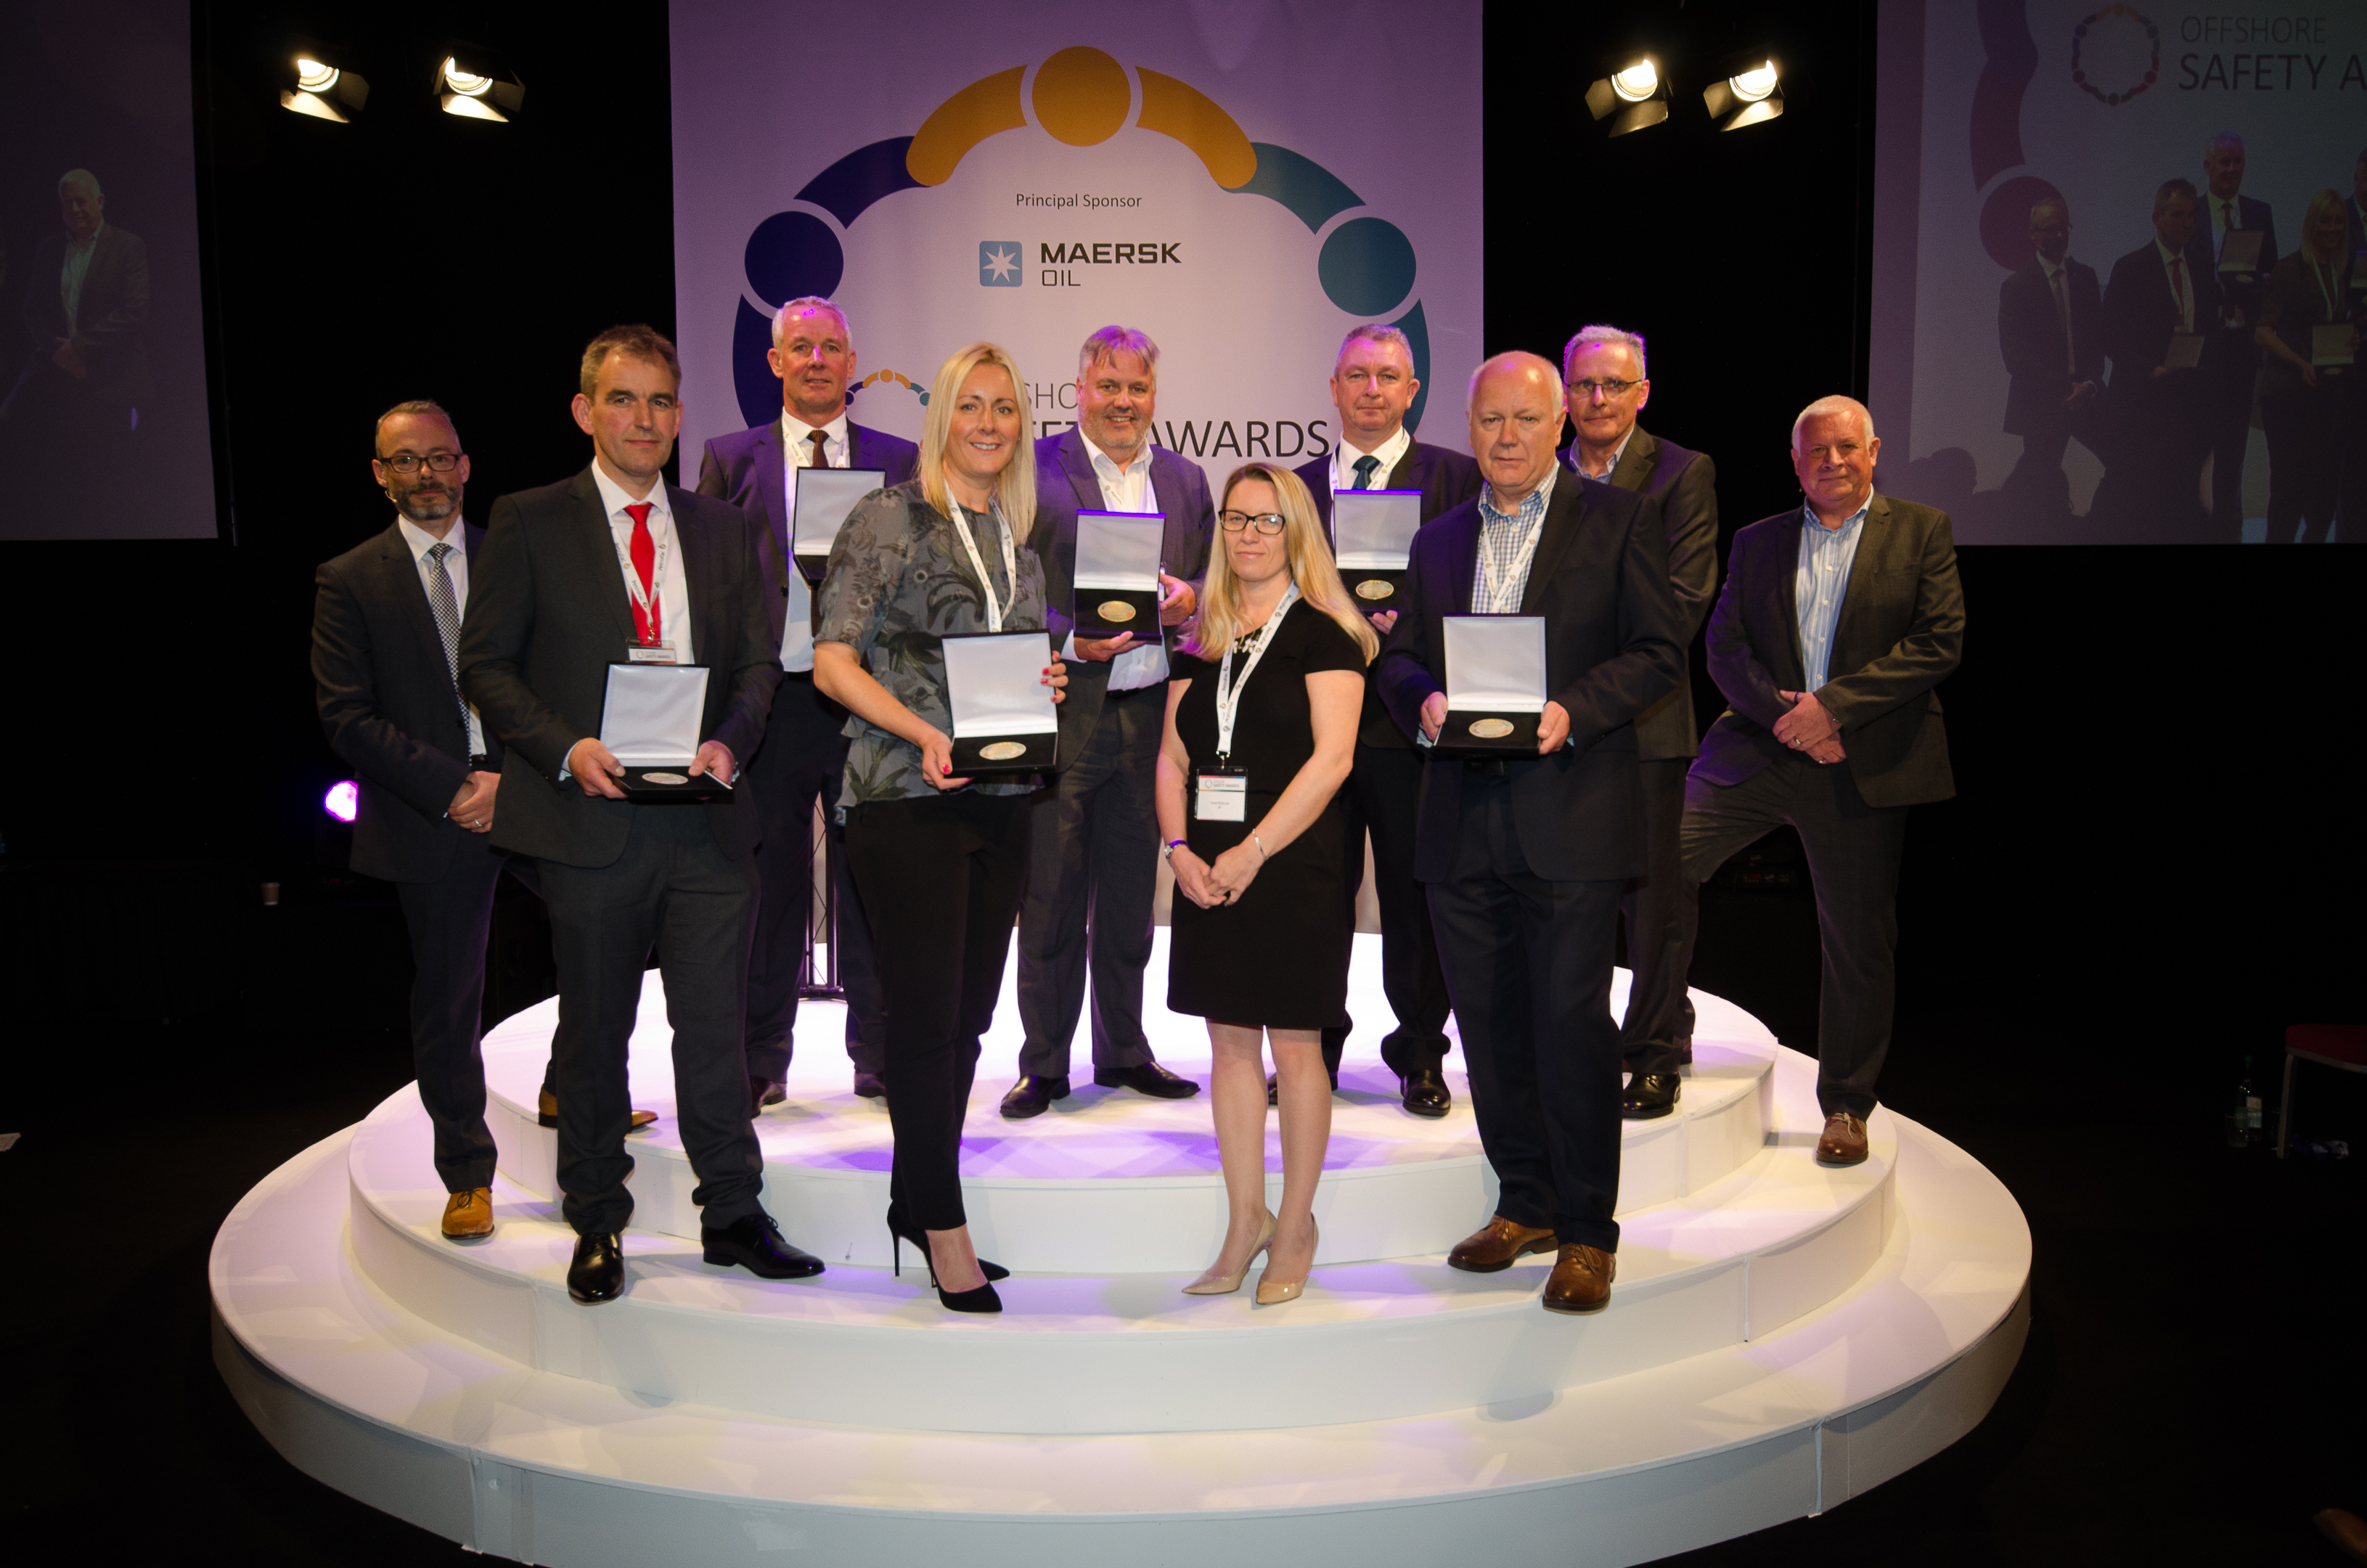 The winners of the Offshore Safety Awards in 2017